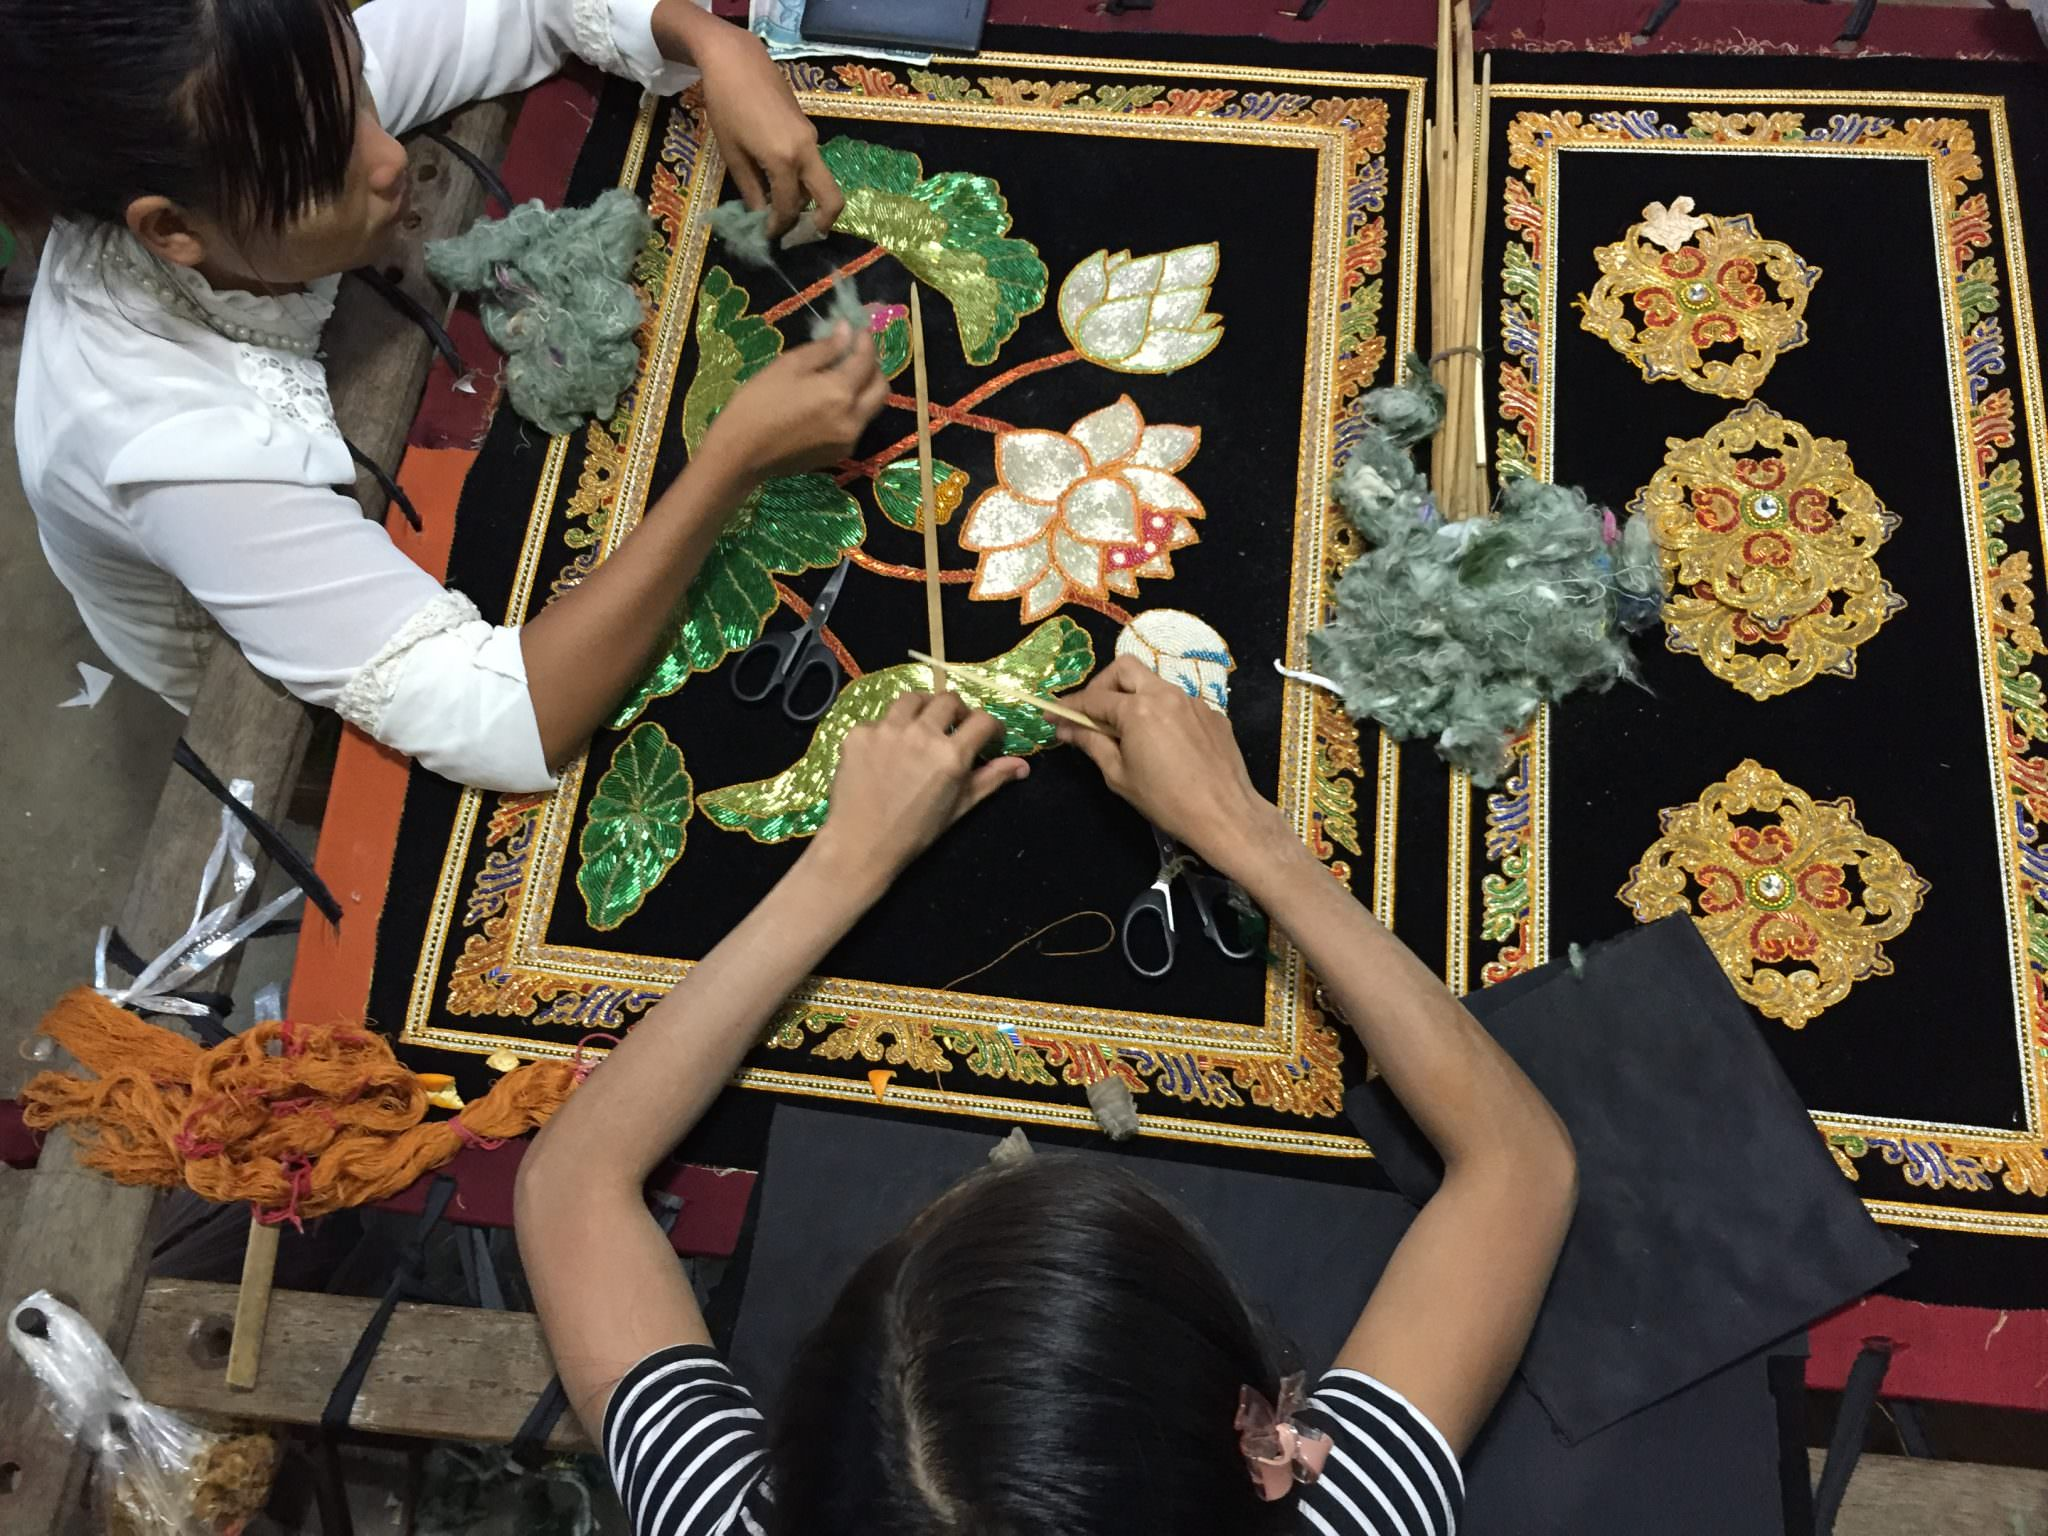 A Burmese kalaga is a decorative, embroidered cloth. They are unique in their design with sequins, 24 carat gold thread, and raw cotton shoved under the patterns to create 3D images. © 2015 Gail Jessen